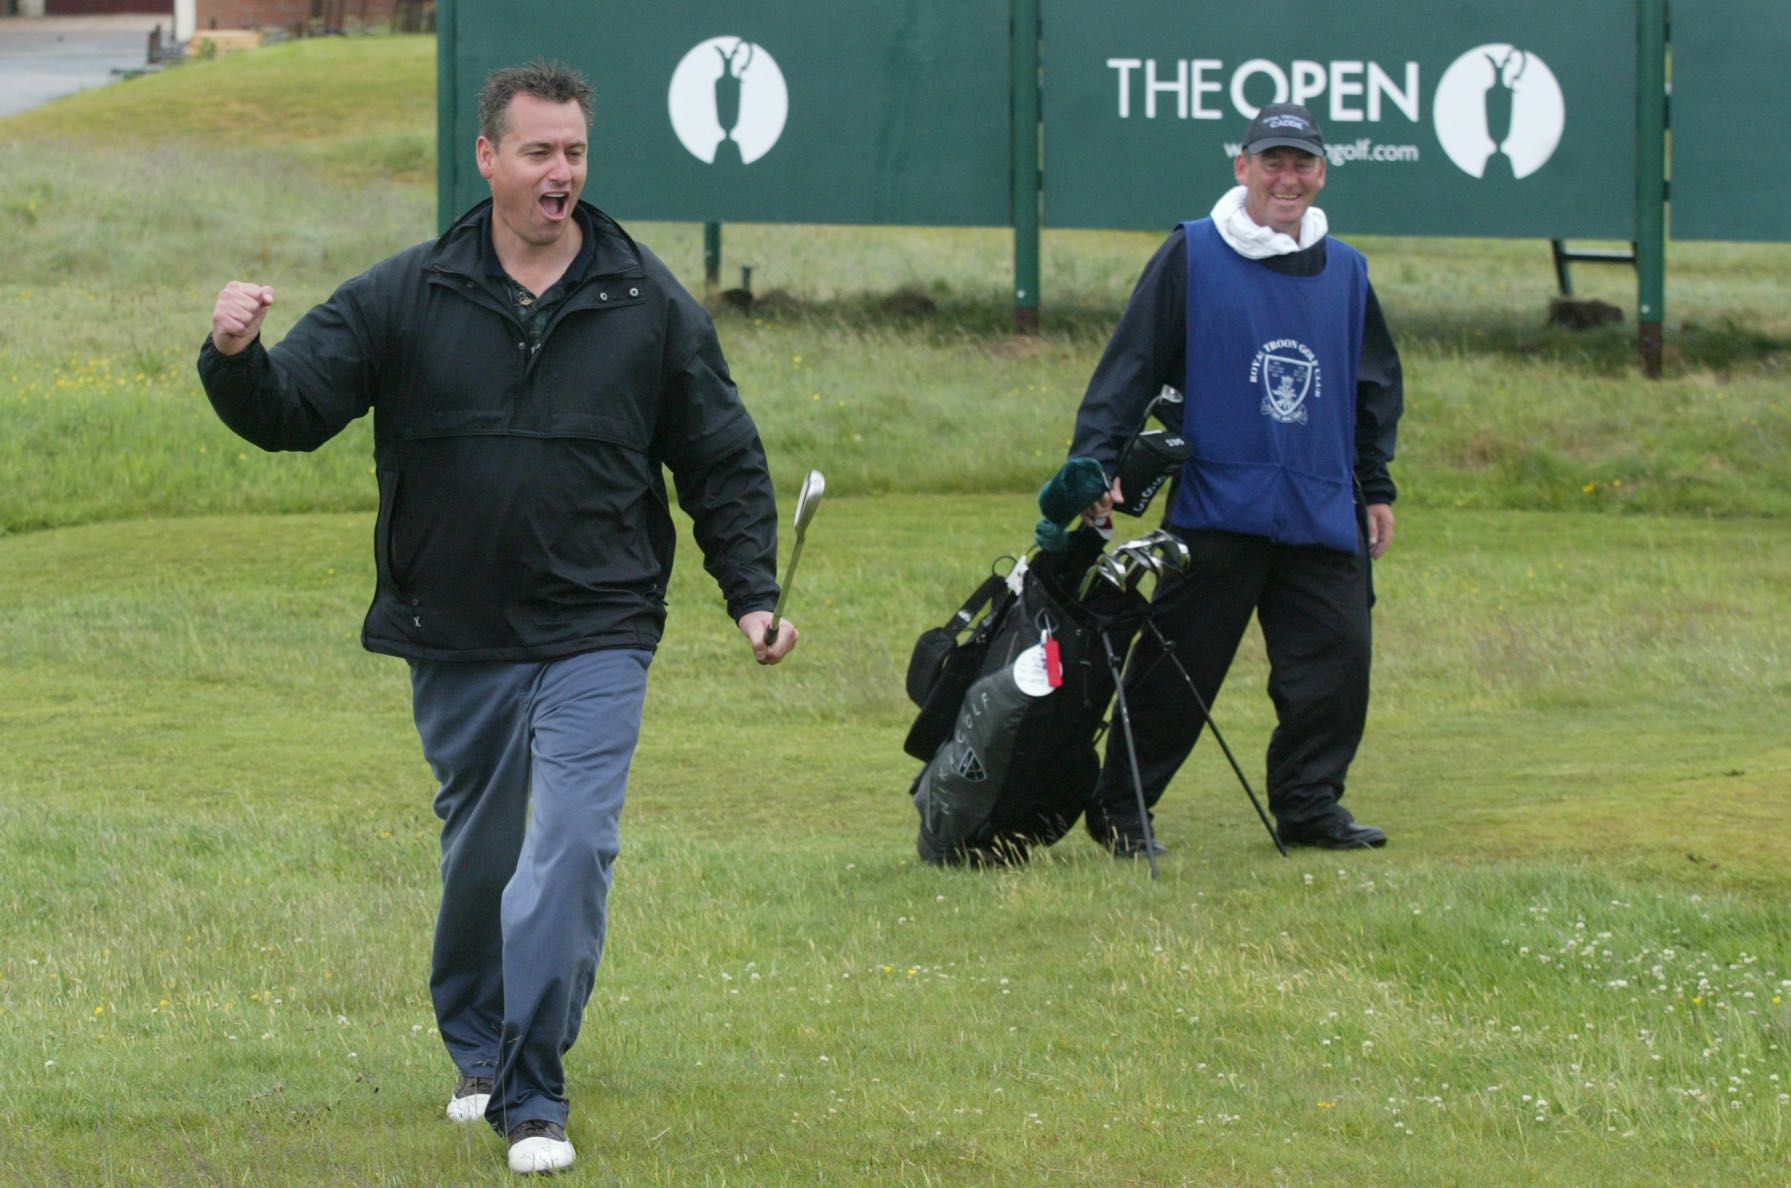 The Foozler Goes Caddying